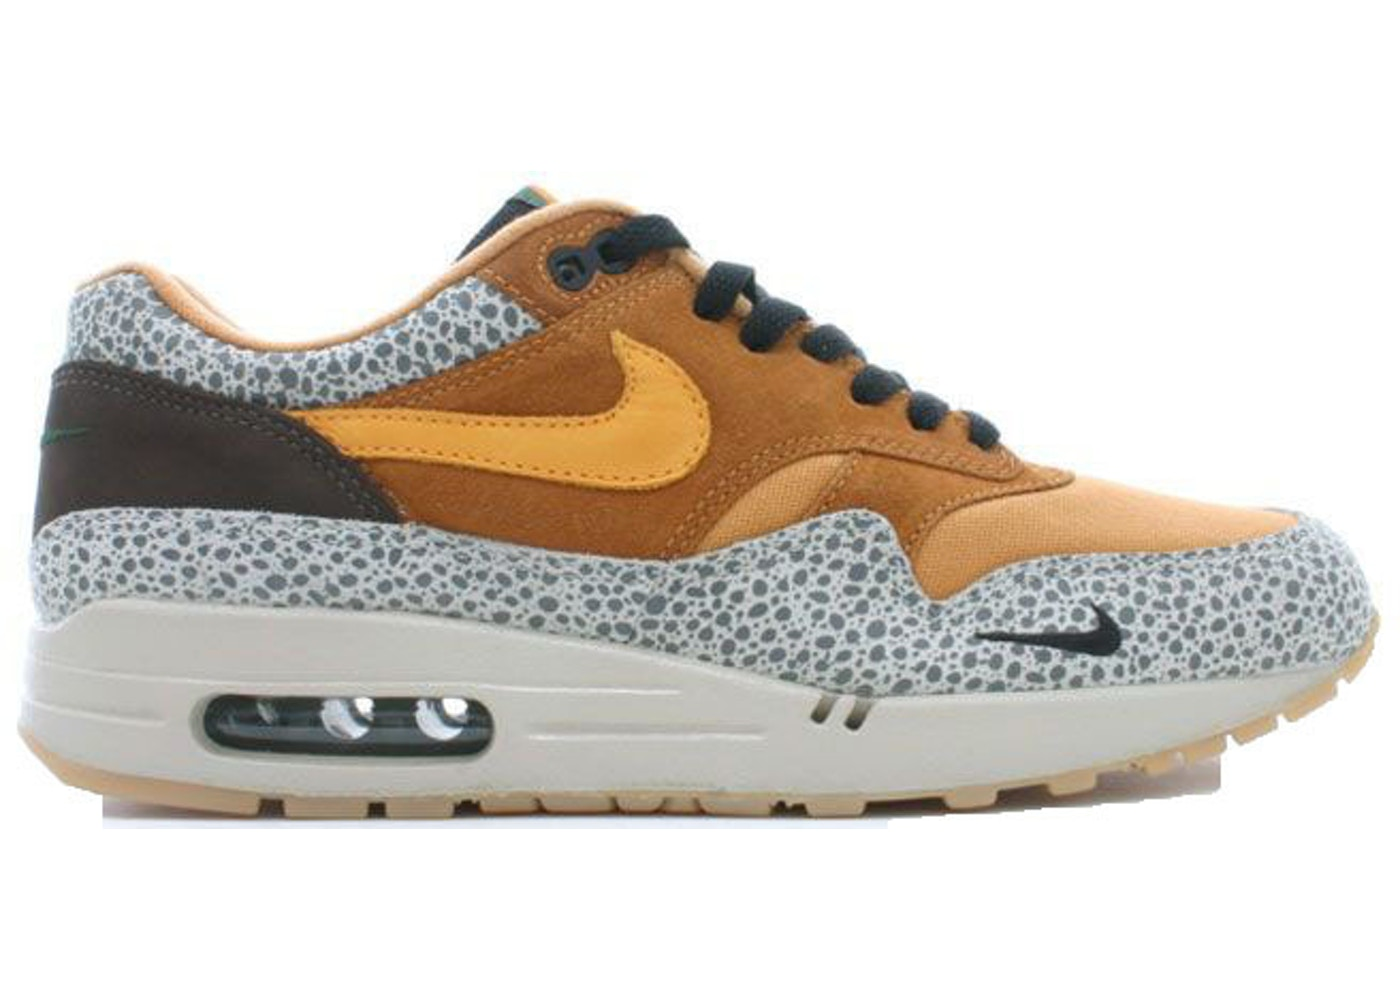 low priced c9c91 5da6f Air Max 1 Atmos Safari (2002)